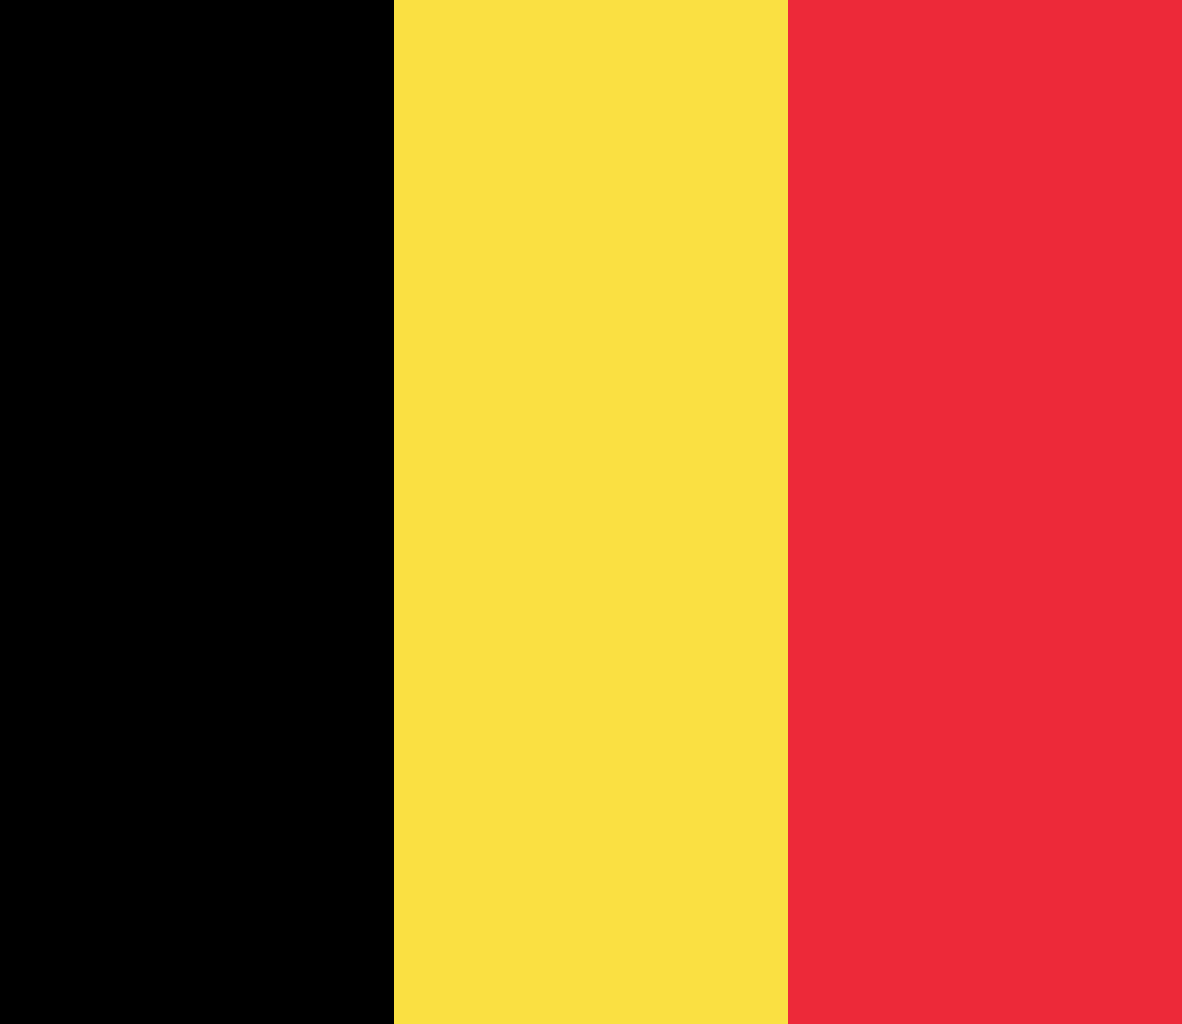 Flag Of Belgium Backgrounds, Compatible - PC, Mobile, Gadgets| 1182x1024 px